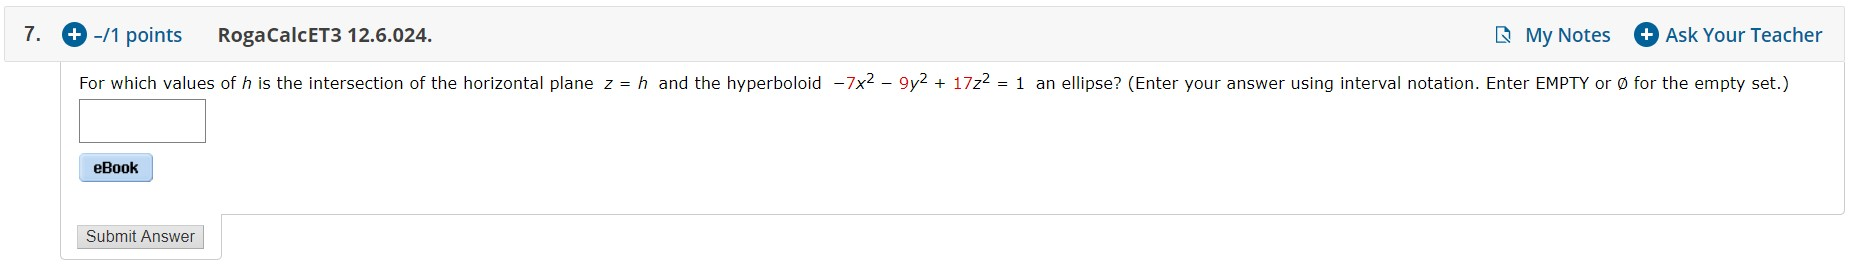 7. + -11 points RogaCalcET3 12.6.024. My Notes + Ask Your Teacher For which values of h is the intersection of the horizontal